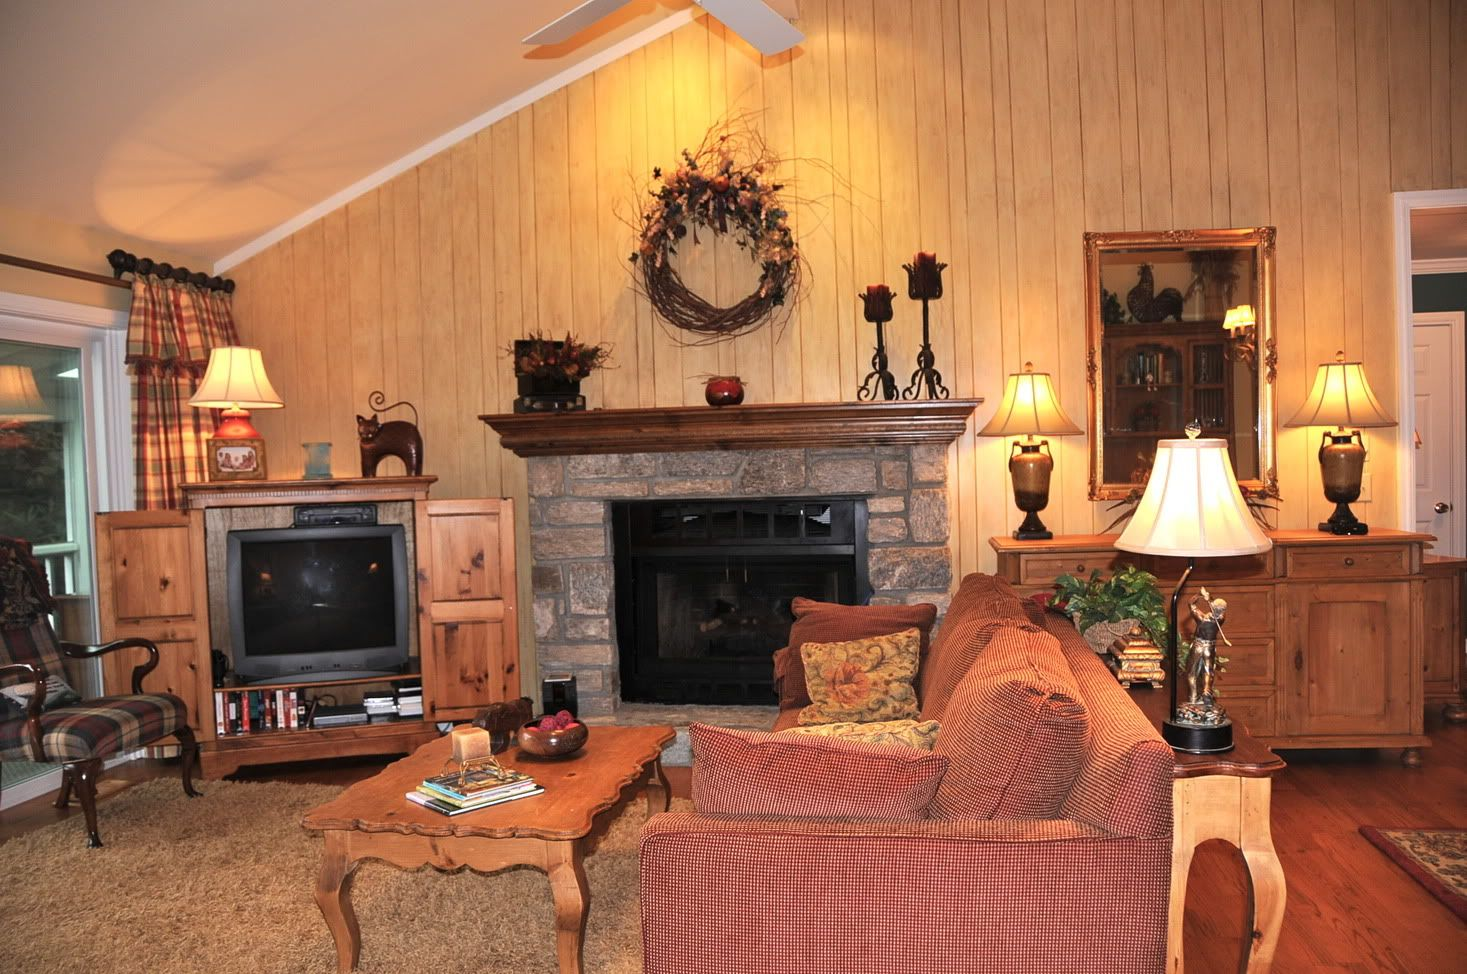 Vaulted ceiling, panelled wall with large stone fireplace